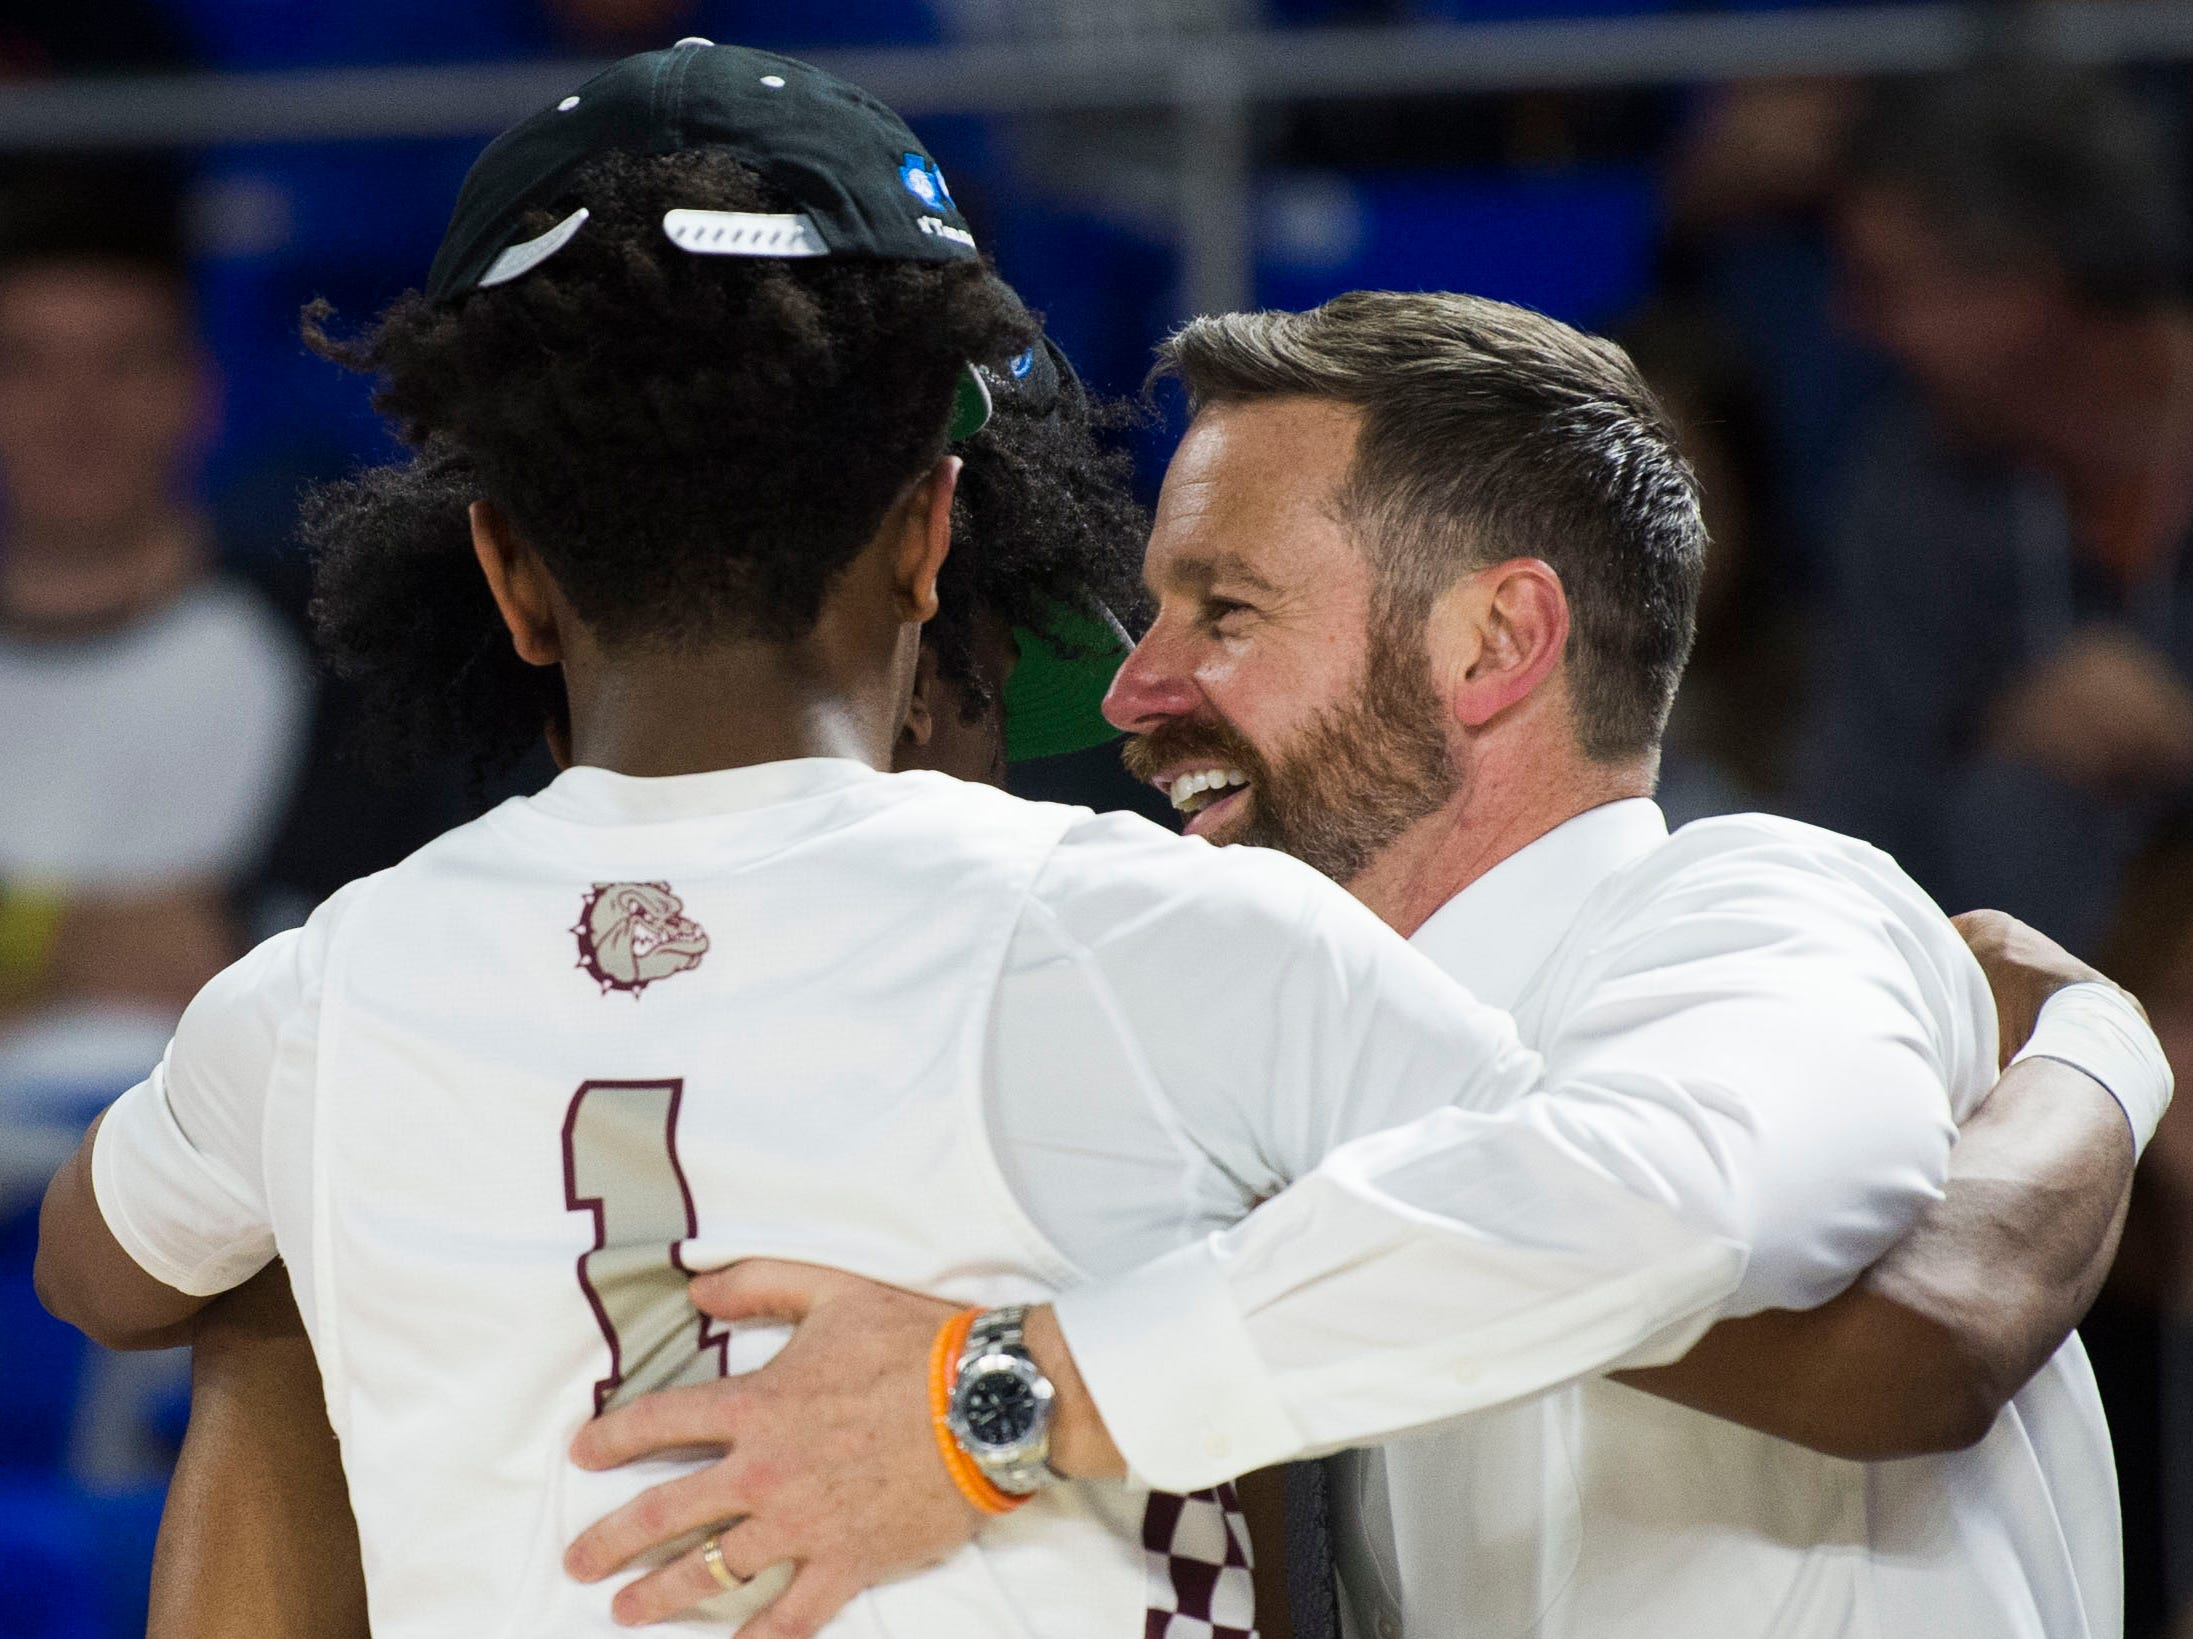 Bearden's head coach Jeremy Parrott hugs Bearden's Trent Stephney (1) and Bearden's Ques Glover (0) after a TSSAA AAA state championship game between Bearden and Memphis East at the Murphy Center in Murfreesboro, Saturday, March 16, 2019. Bearden defeated Memphis East 81-68.